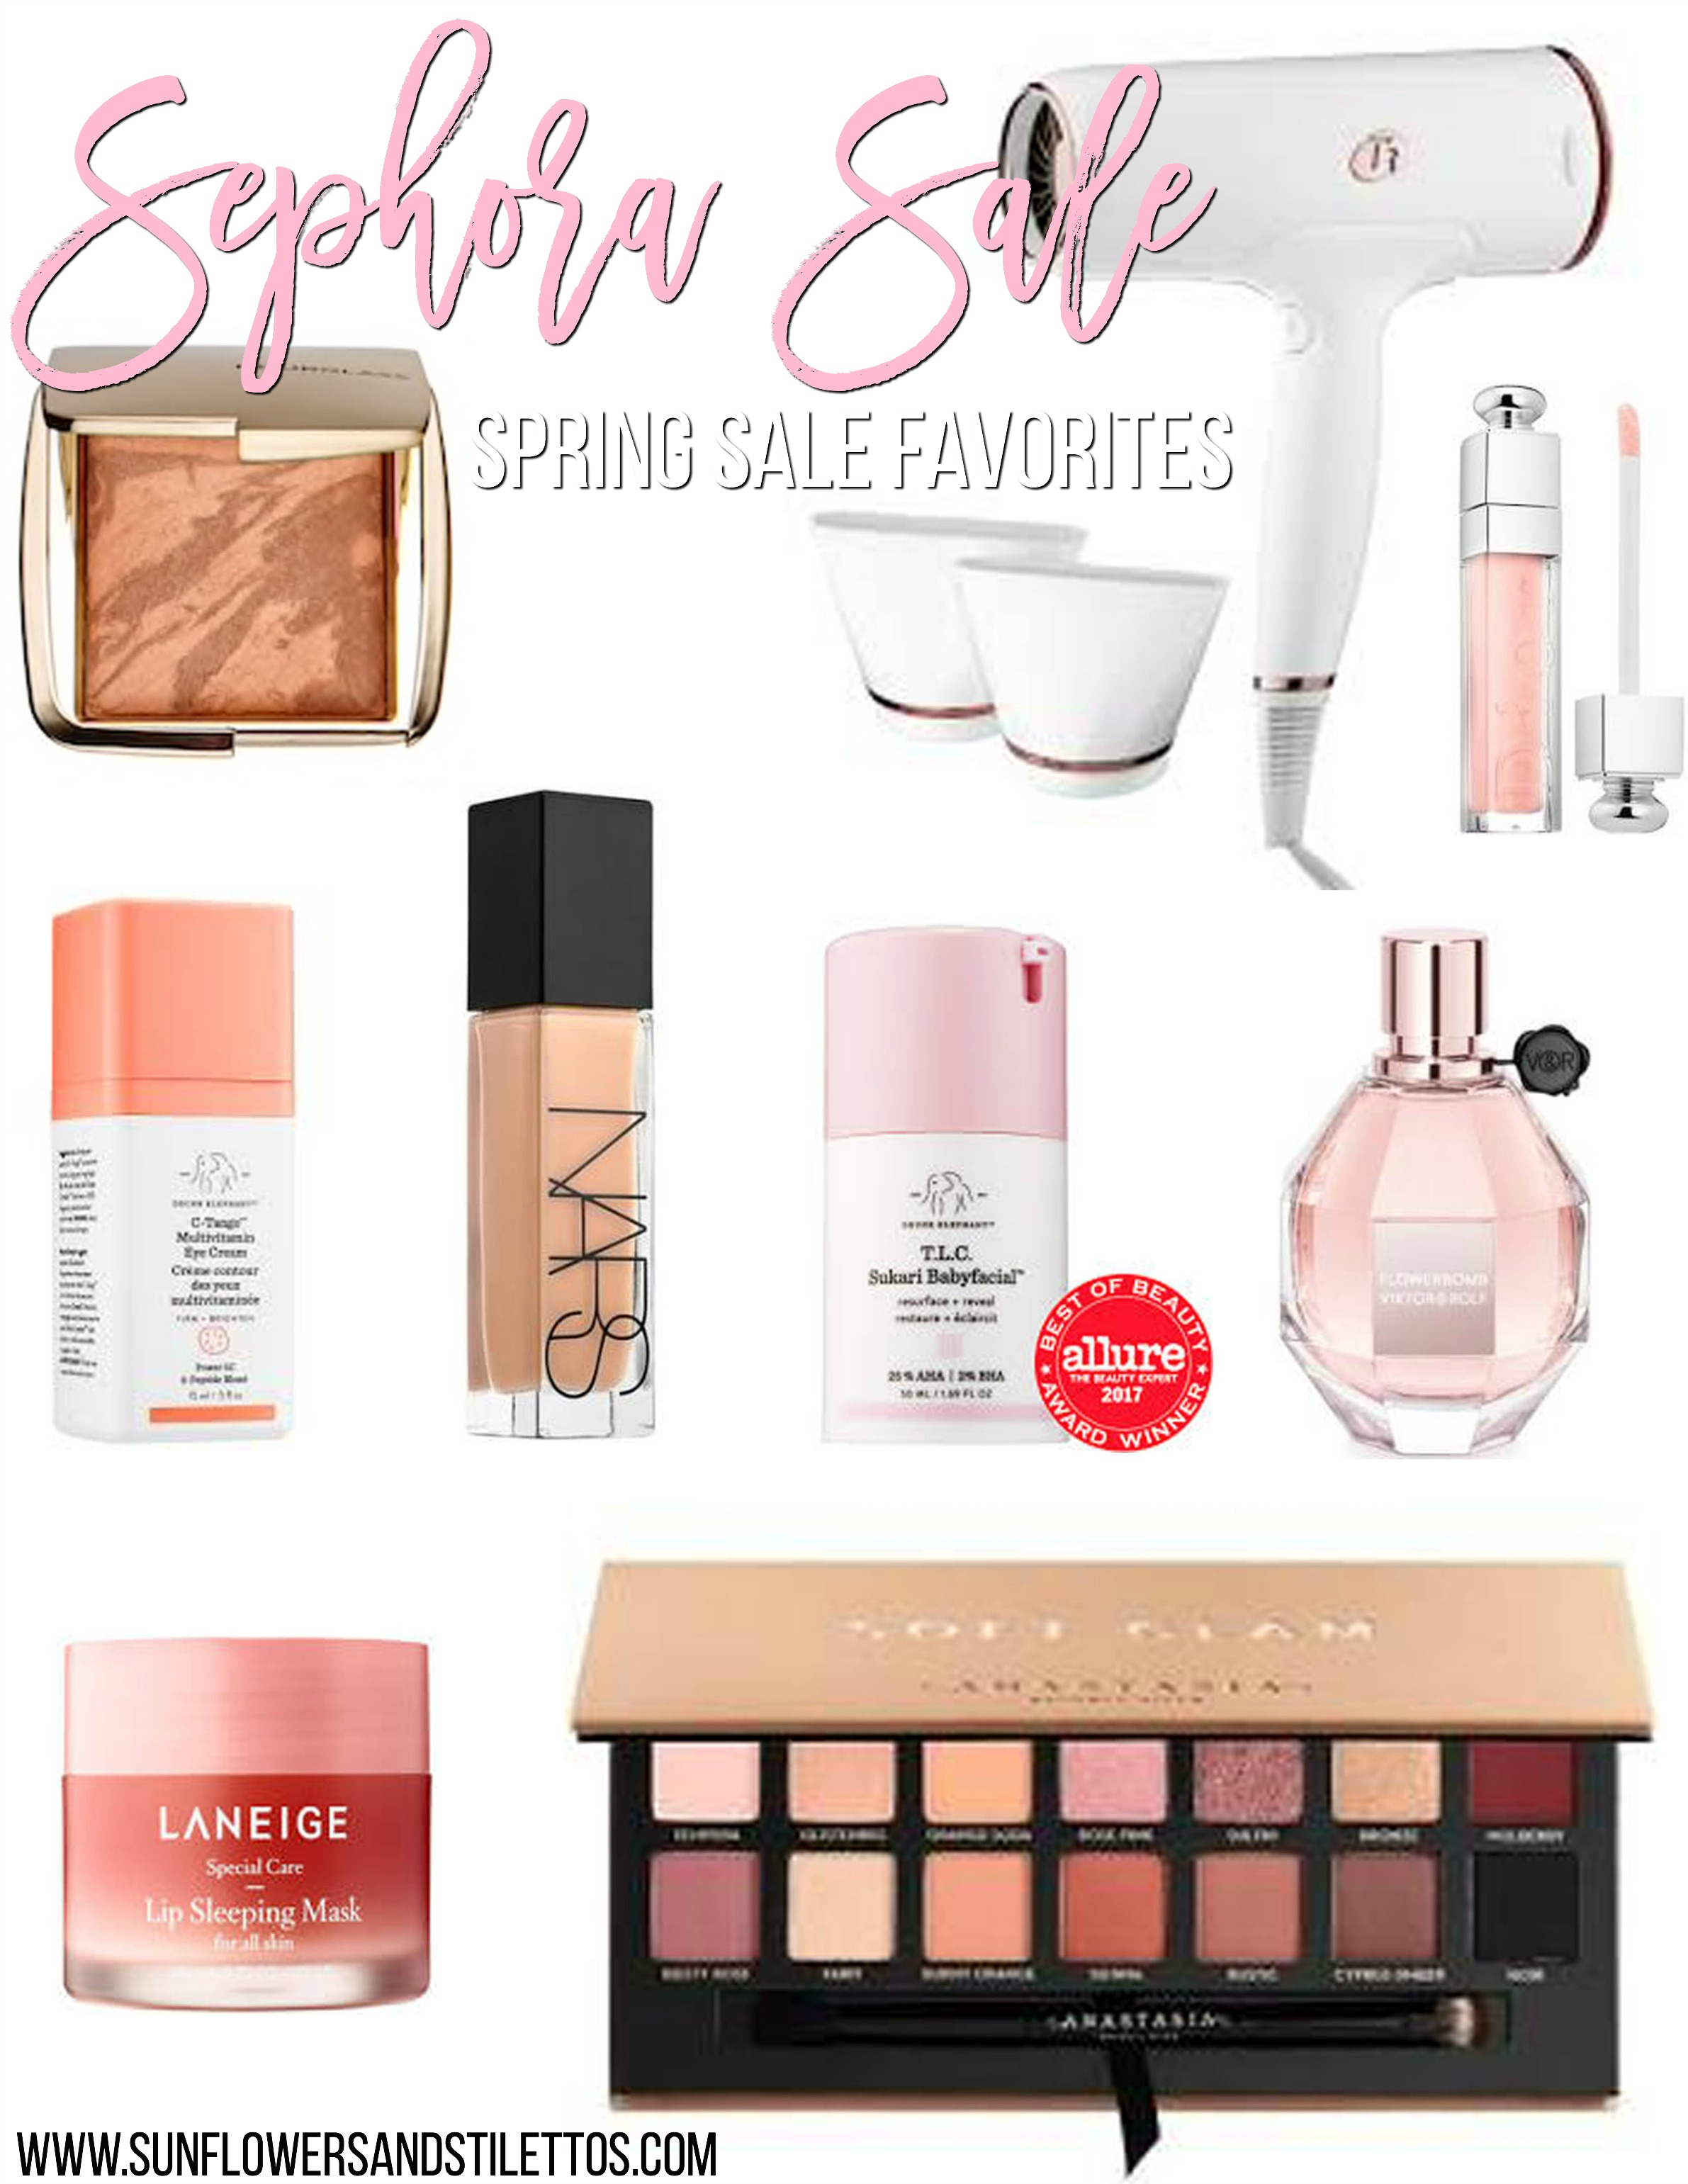 sephora spring sale favorites